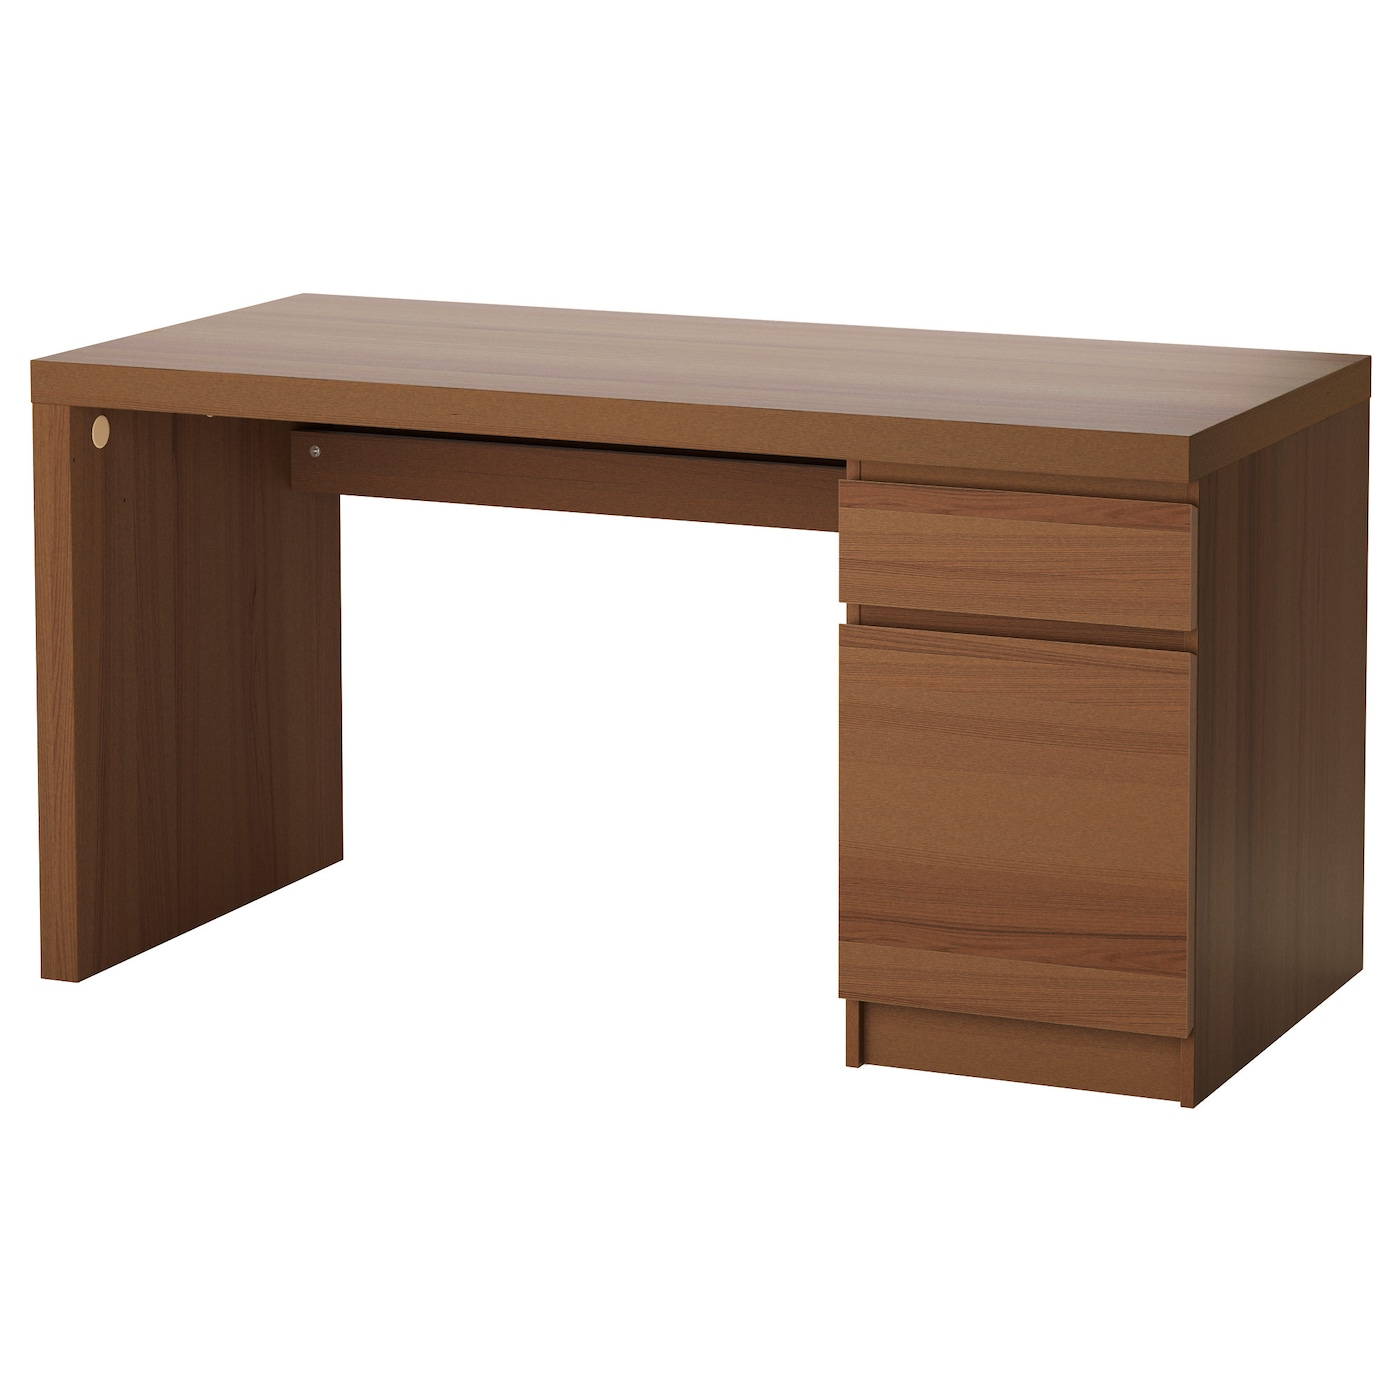 malm desk brown stained ash veneer 140 x 65 cm ikea. Black Bedroom Furniture Sets. Home Design Ideas